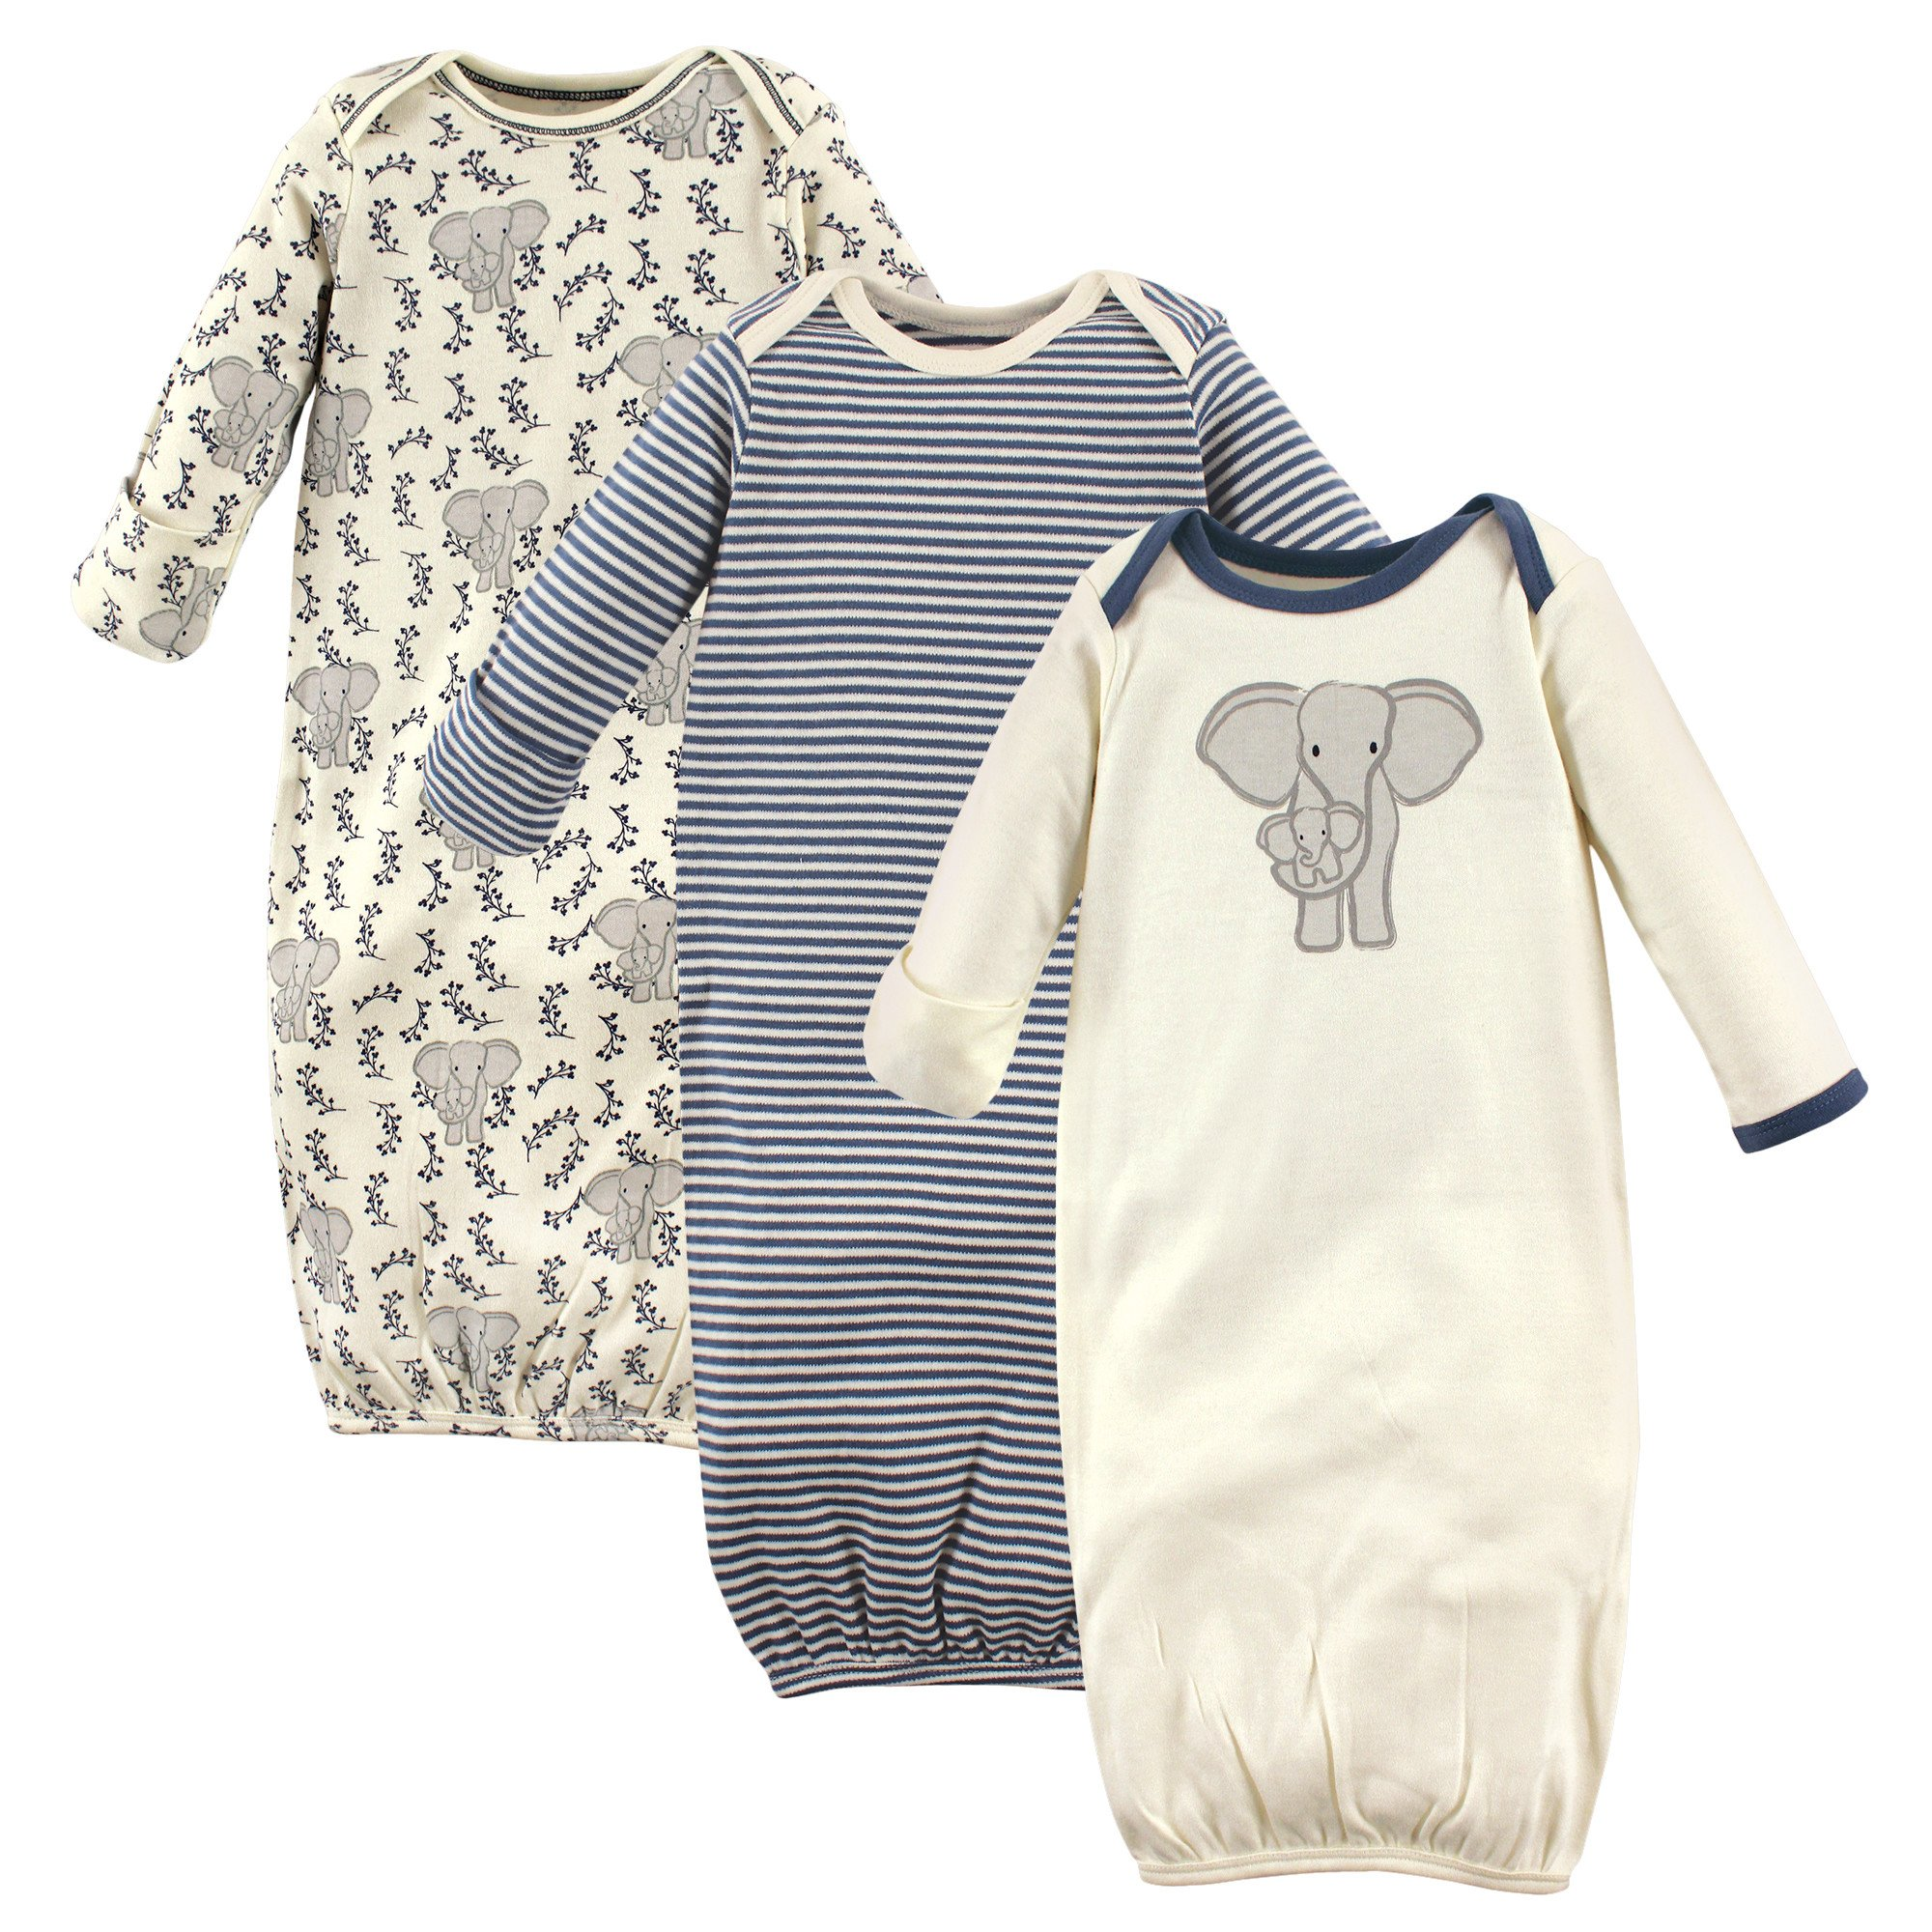 Touched by Nature Baby 3-Pack Organic Cotton Gown, Elephant, 0-6 Months